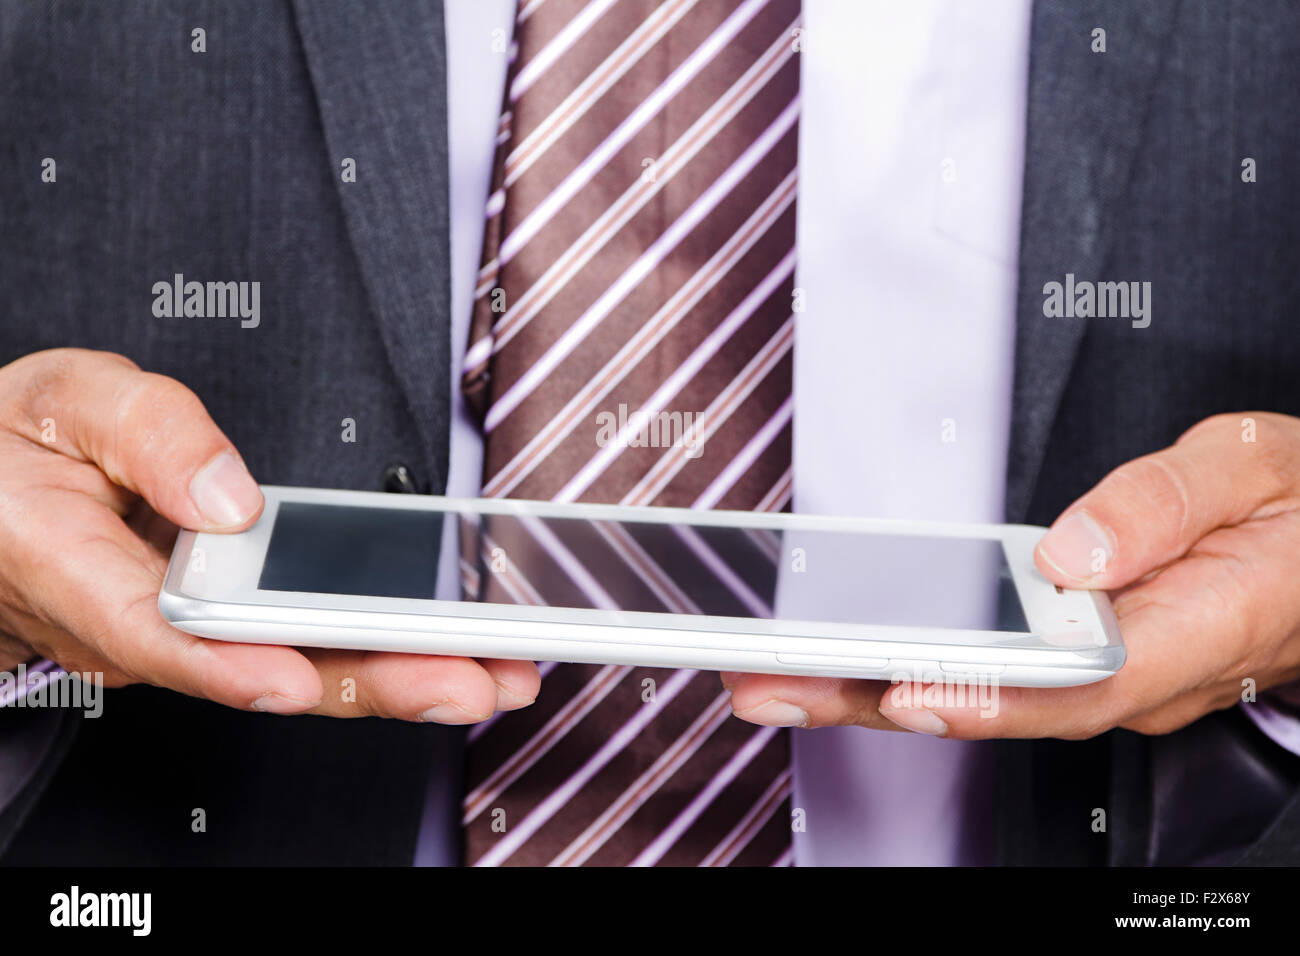 1 Business man Digital Tablet Technology - Stock Image